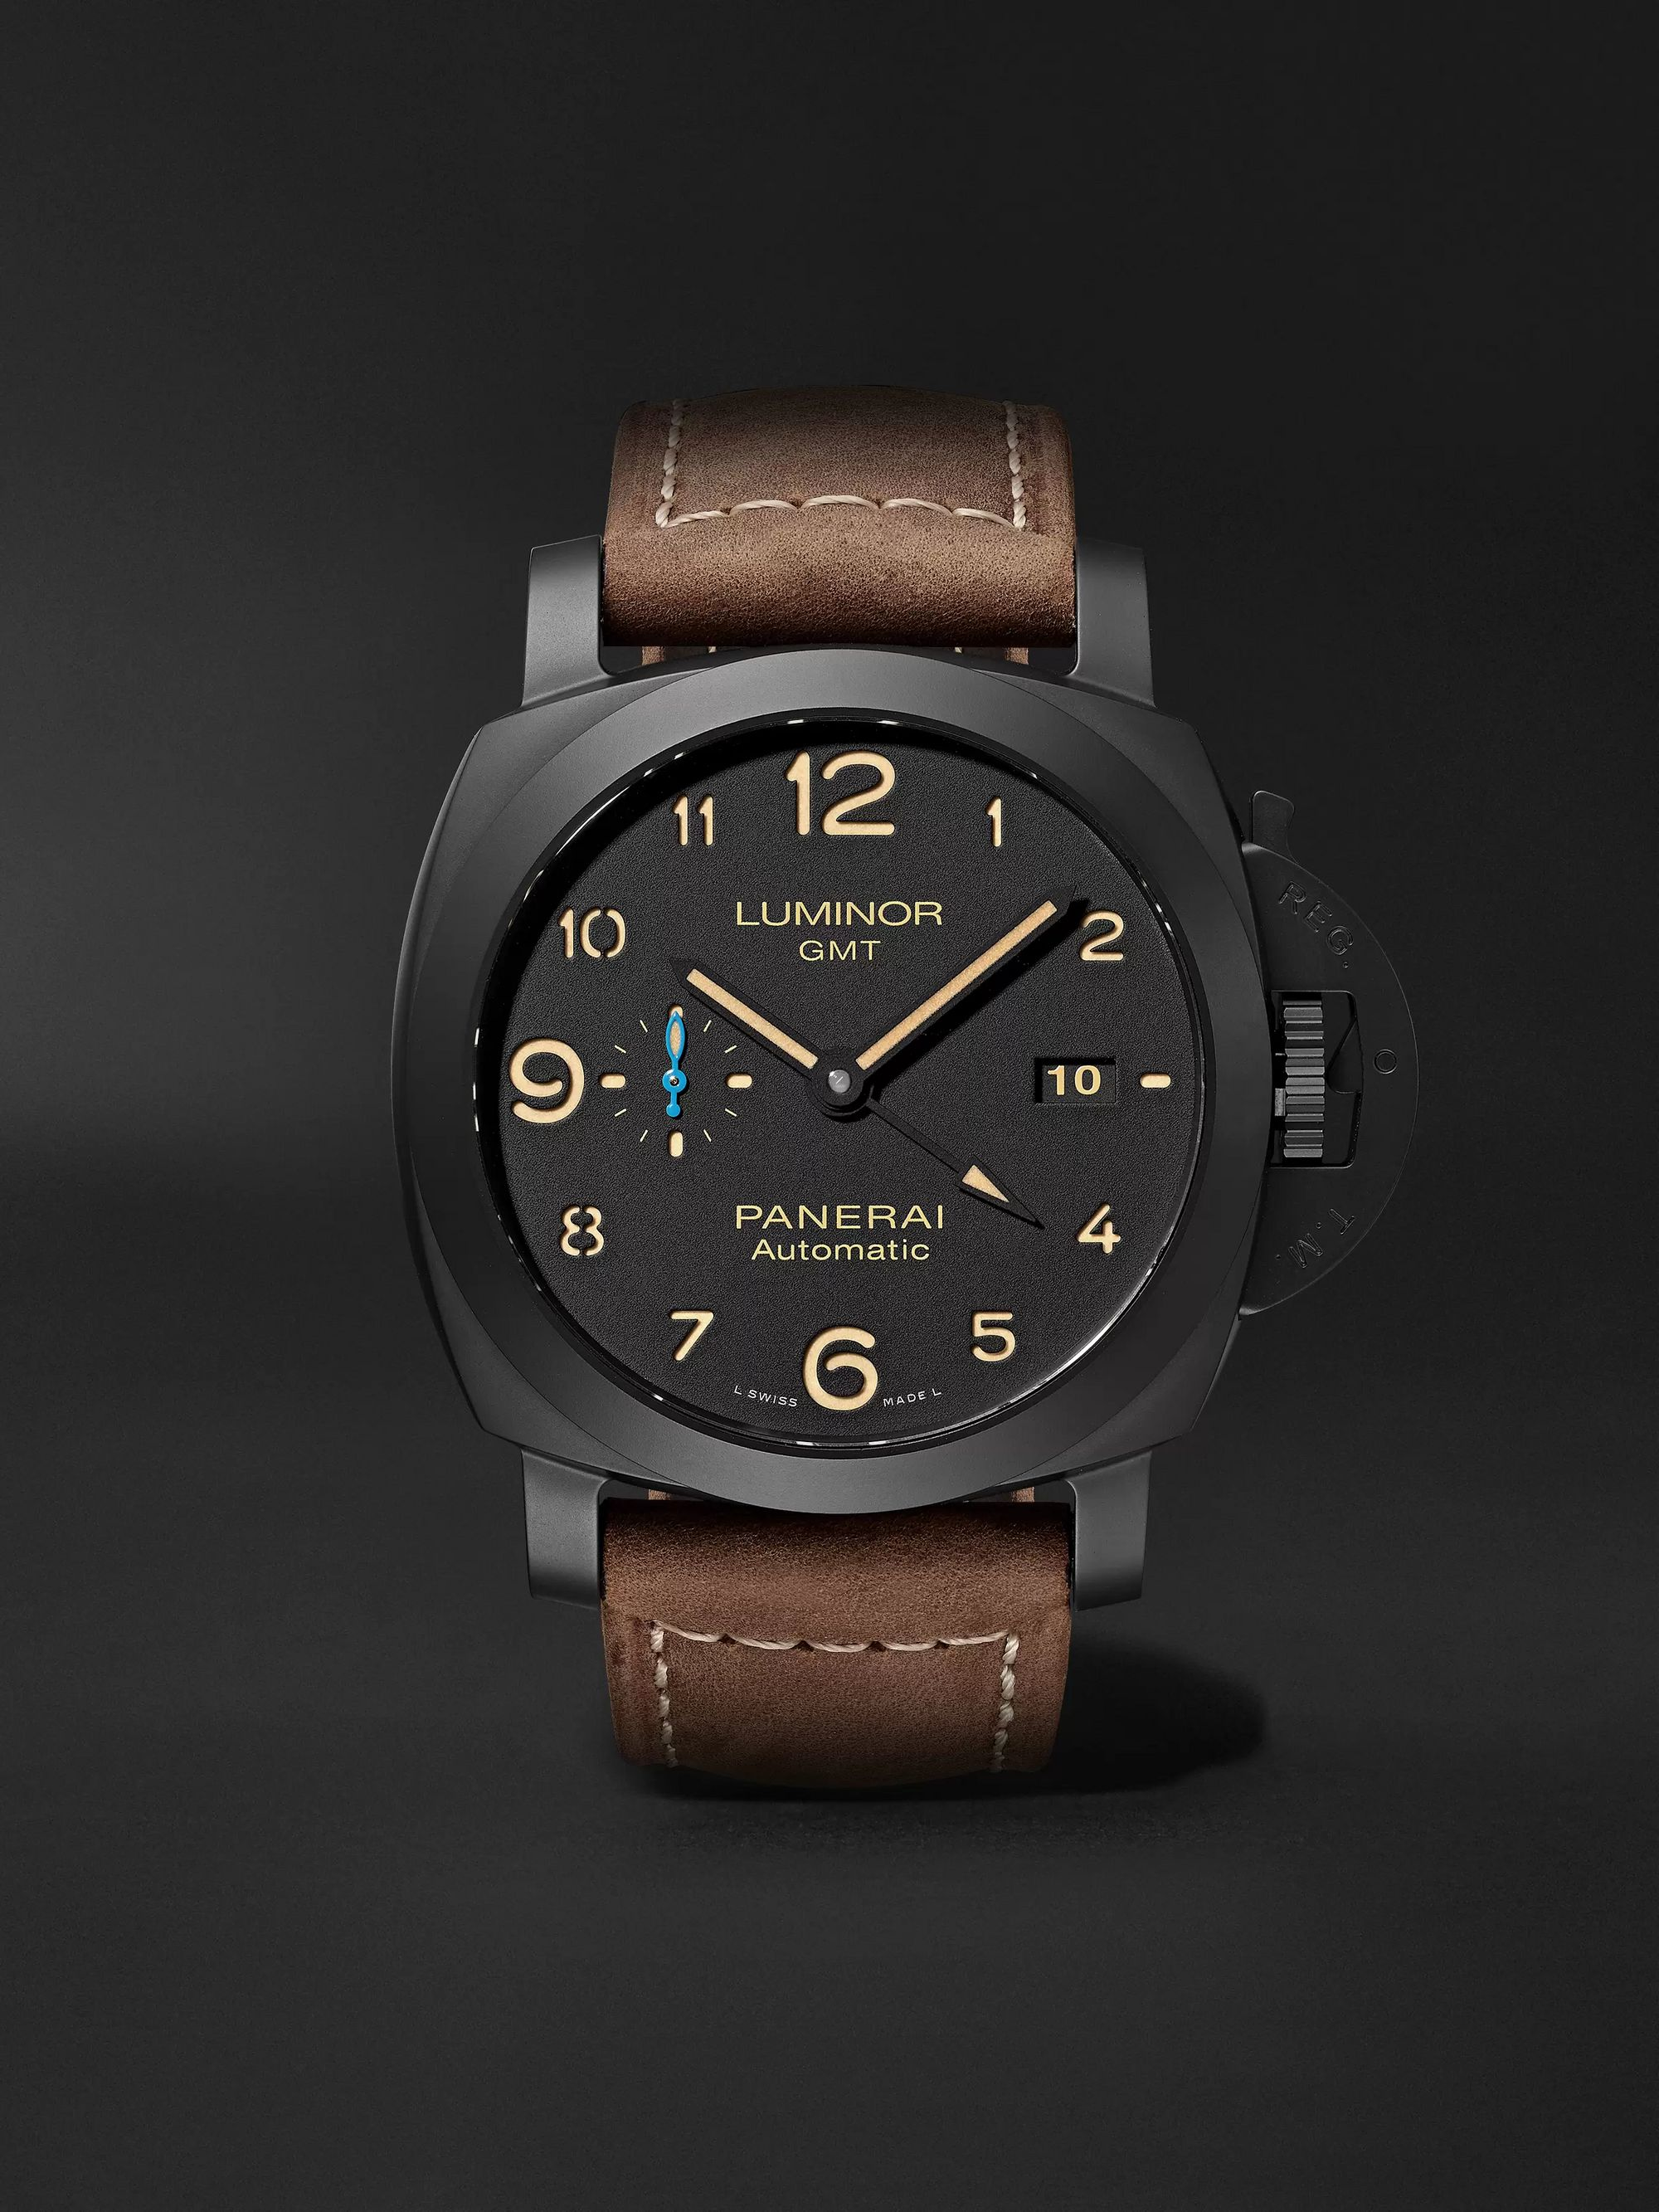 Panerai Luminor 1950 3 Days GMT Automatic 44mm Ceramic and Leather Watch, Ref. No. PAM01441